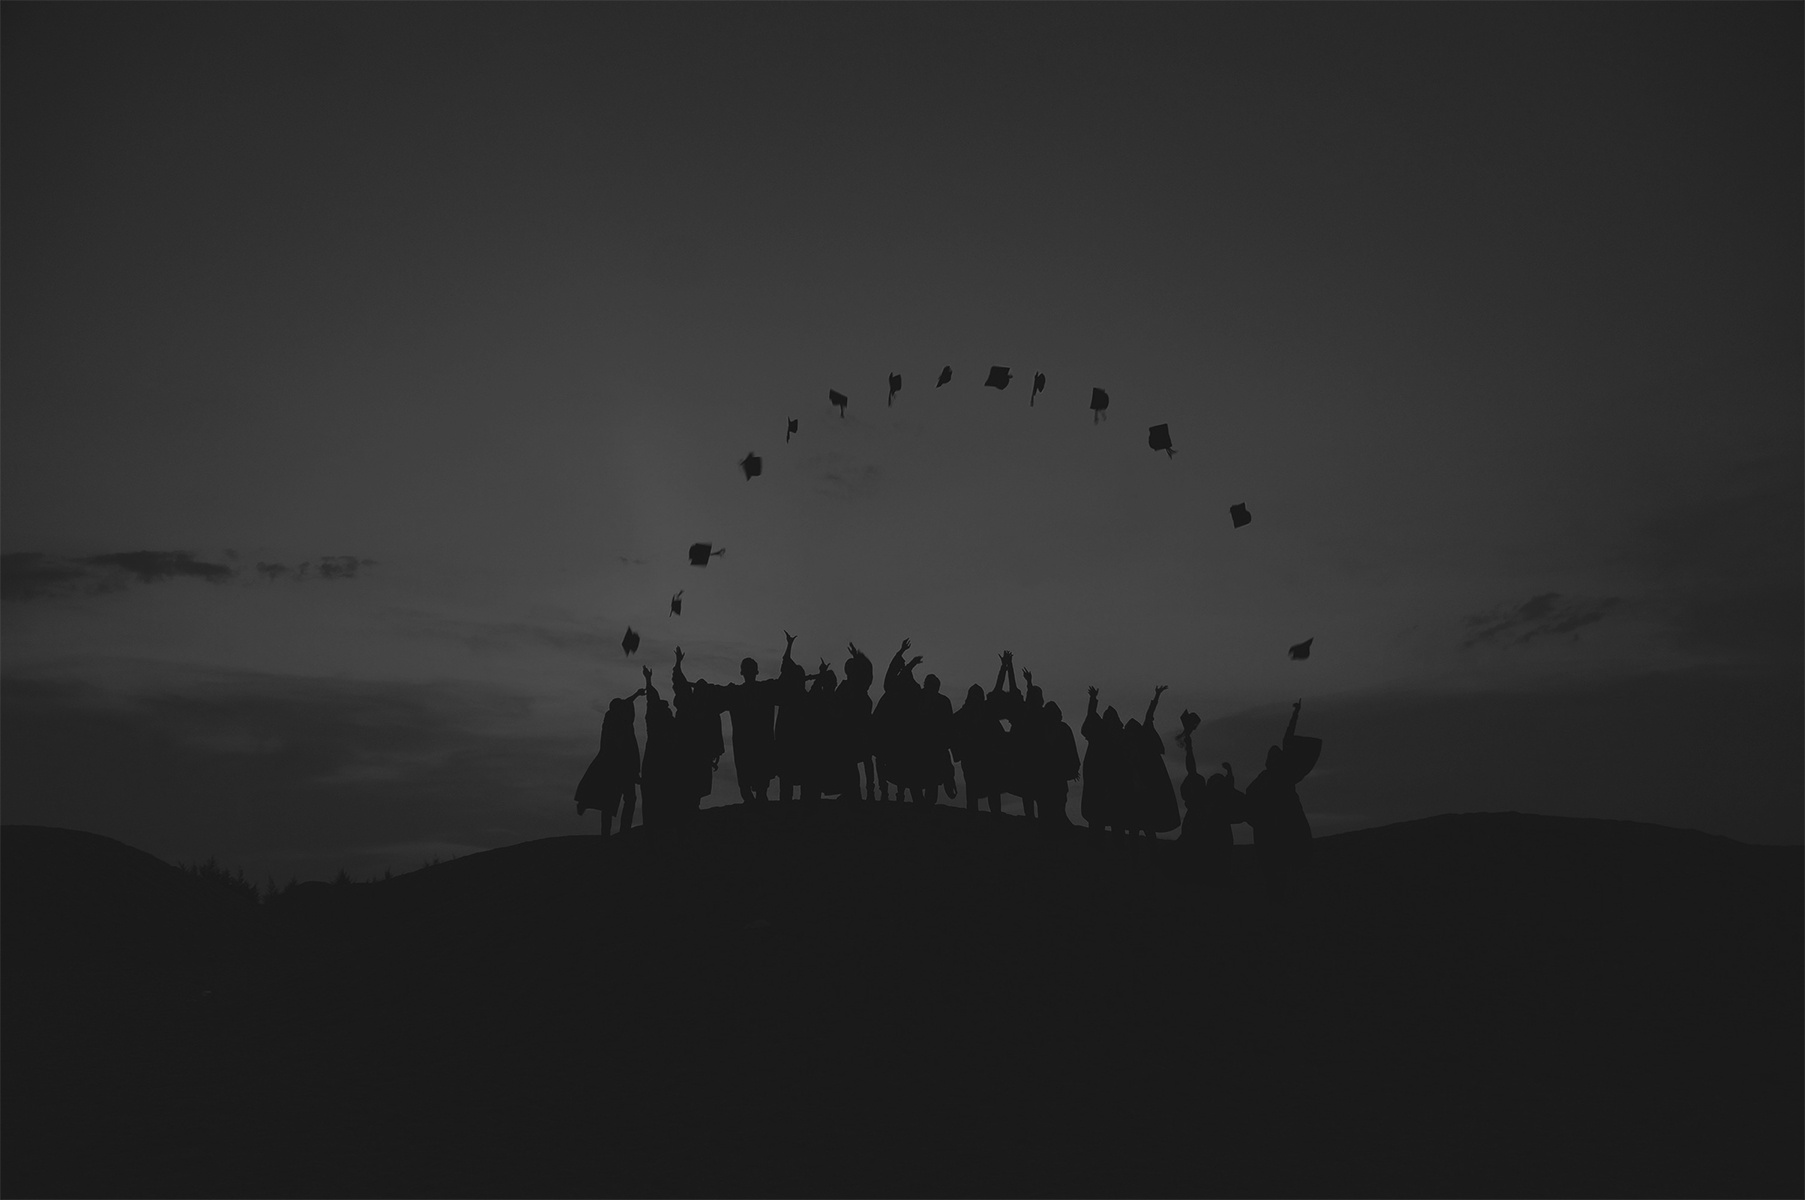 graduationBackground